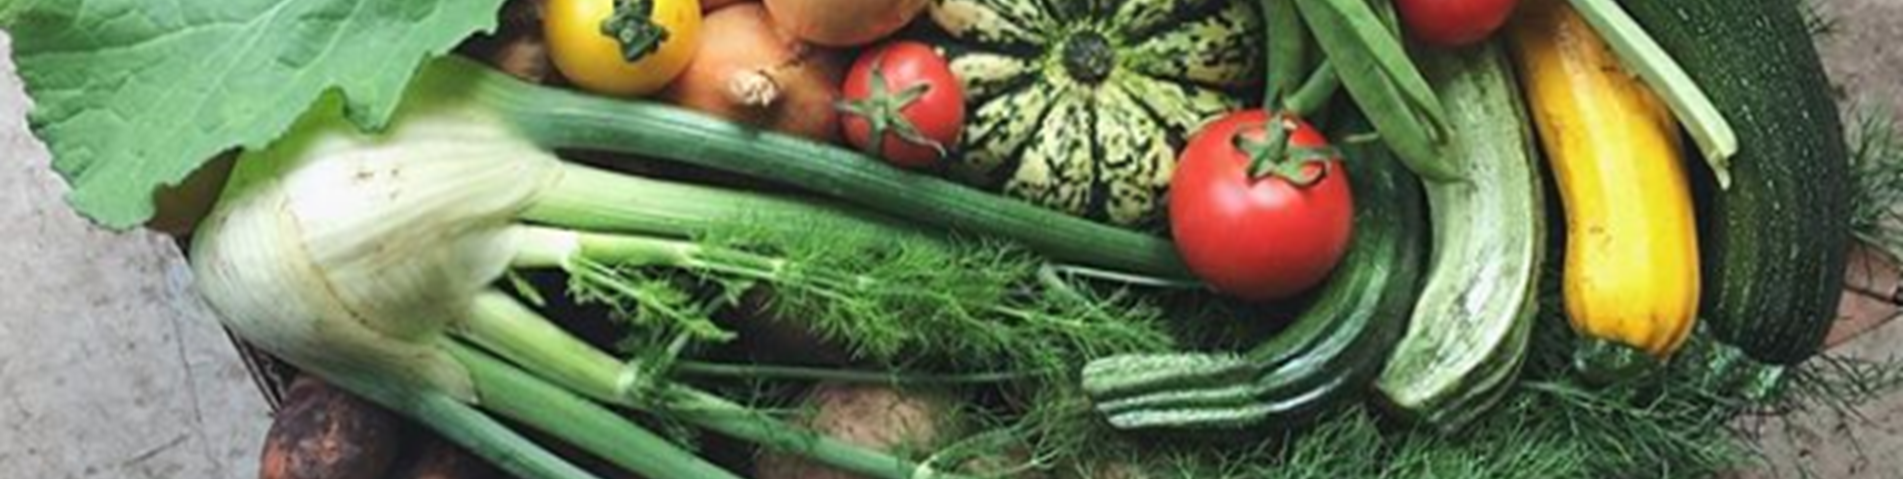 Veg box - instagram crop.png